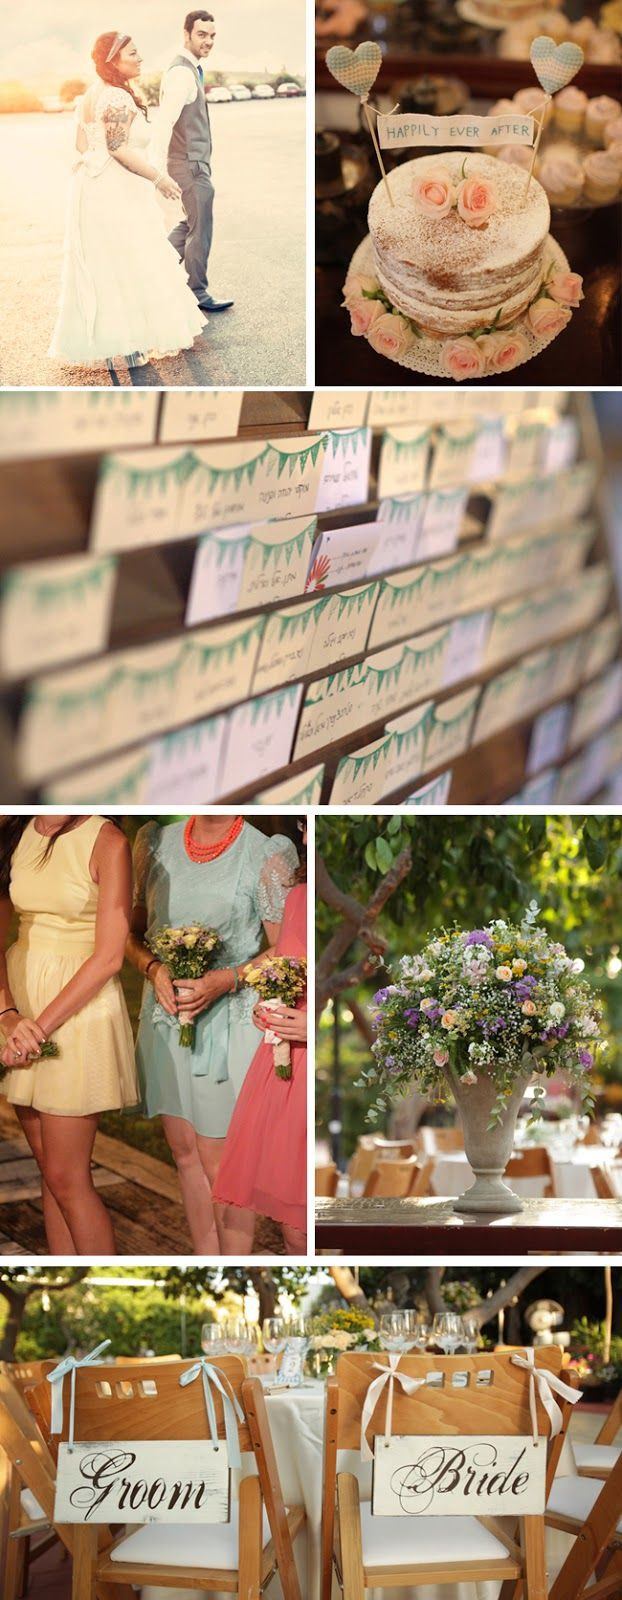 quirky and whimsical DIY wedding in Jerusalem